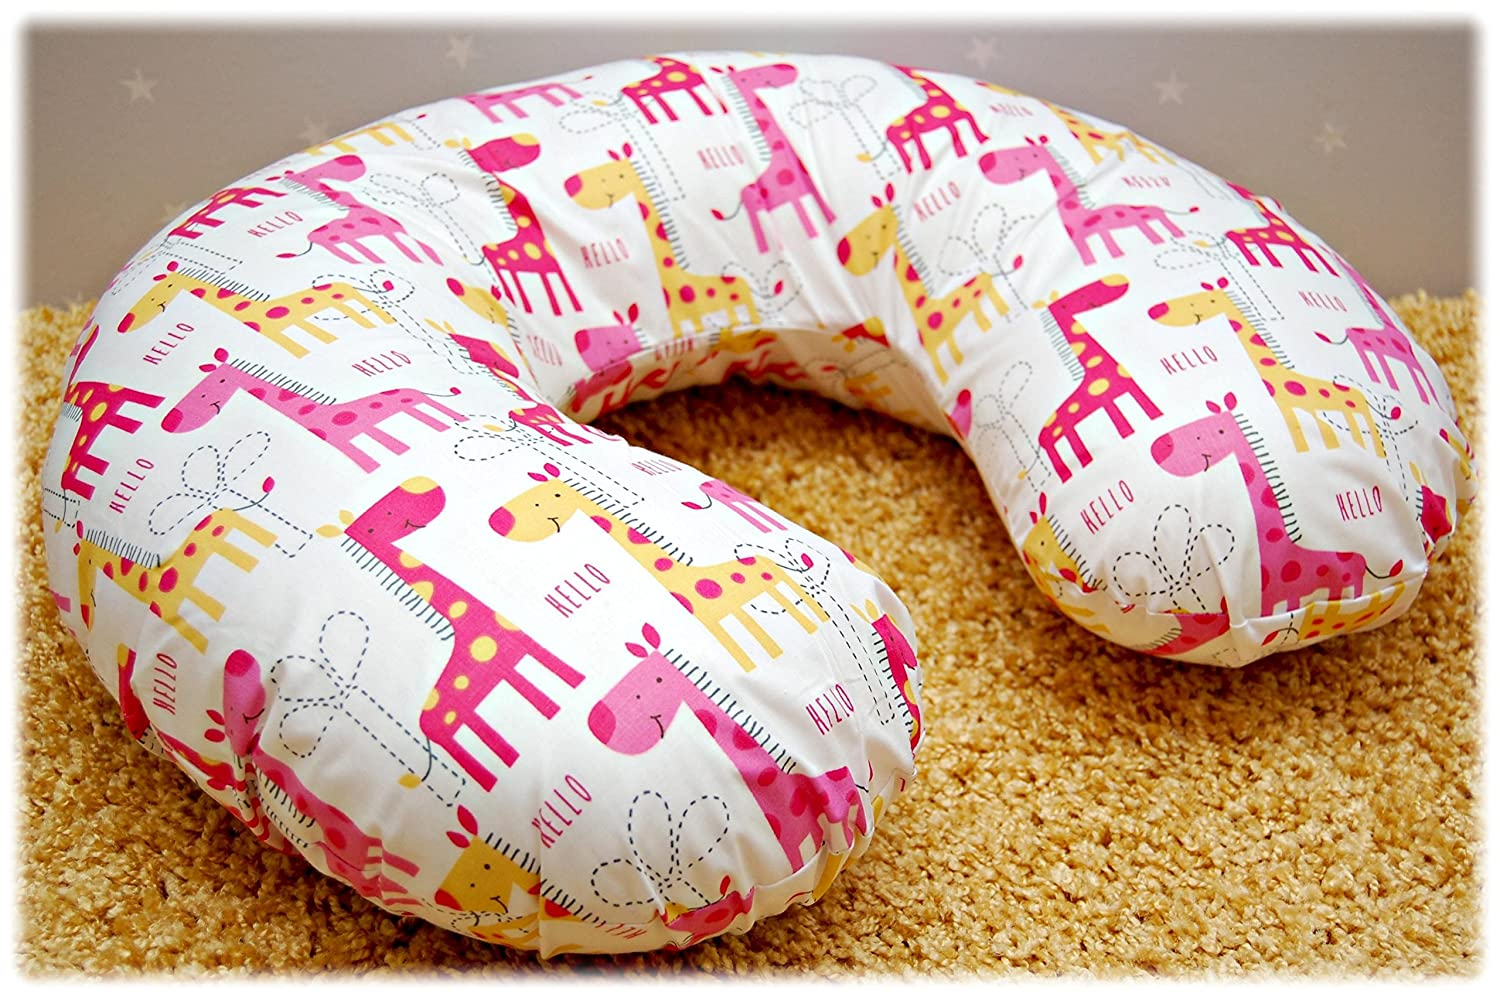 Cotton Cover for Multipurpose Breast Feeding MATERN​ITY Nursing Pillow Cover ONLY (17) EmJoyShop